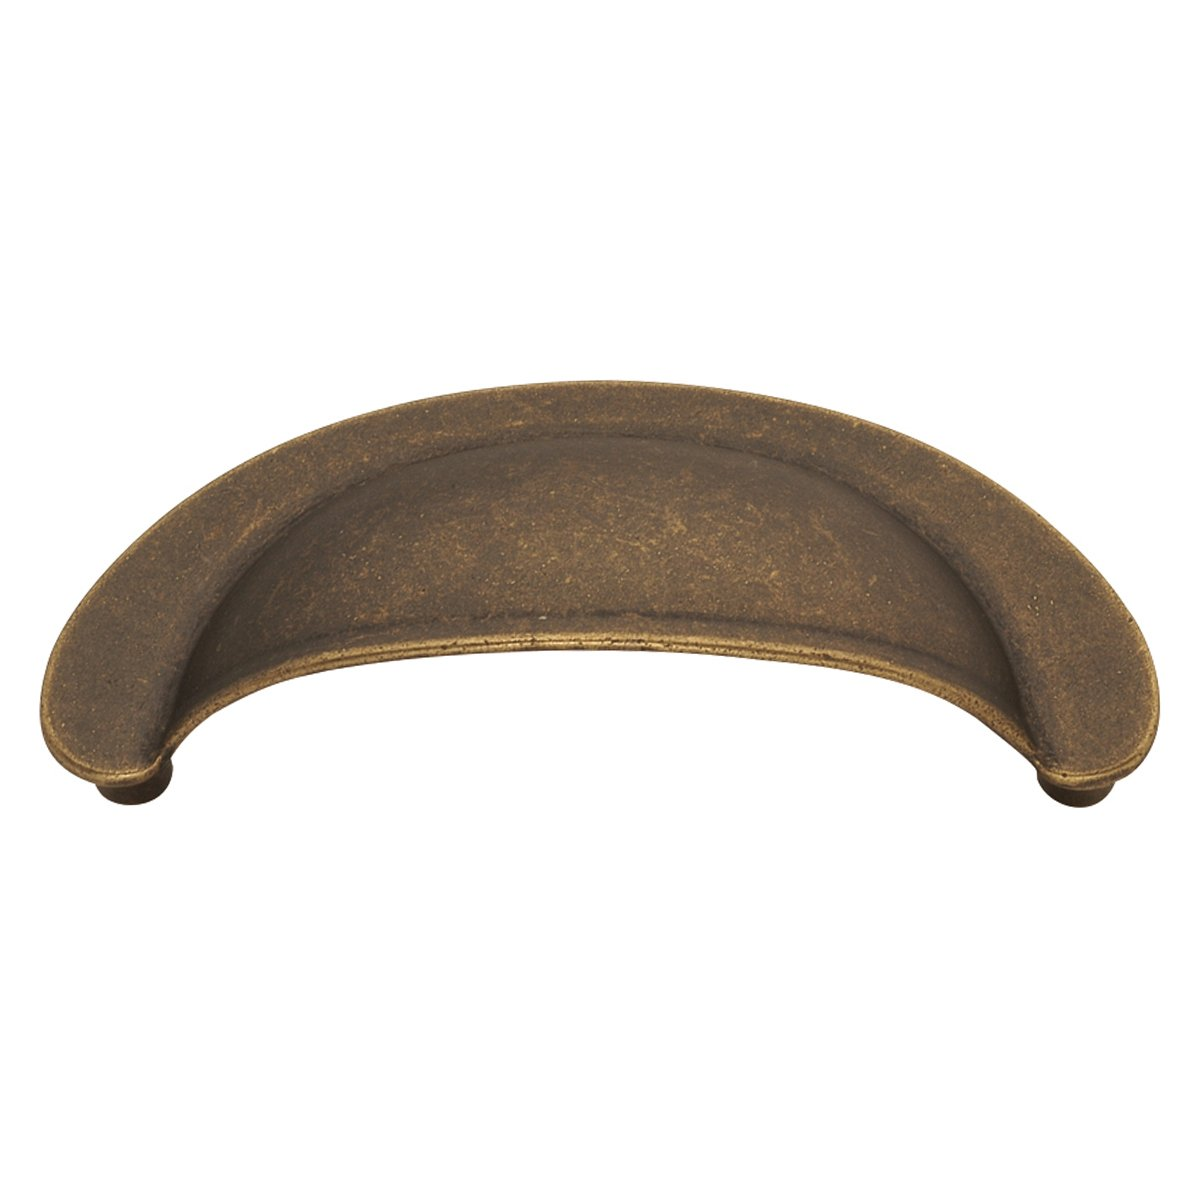 Hickory Hardware PA1021-WOA Oxford Antique Cup Cabinet Pull, 2.75-Inch, Windover Antique